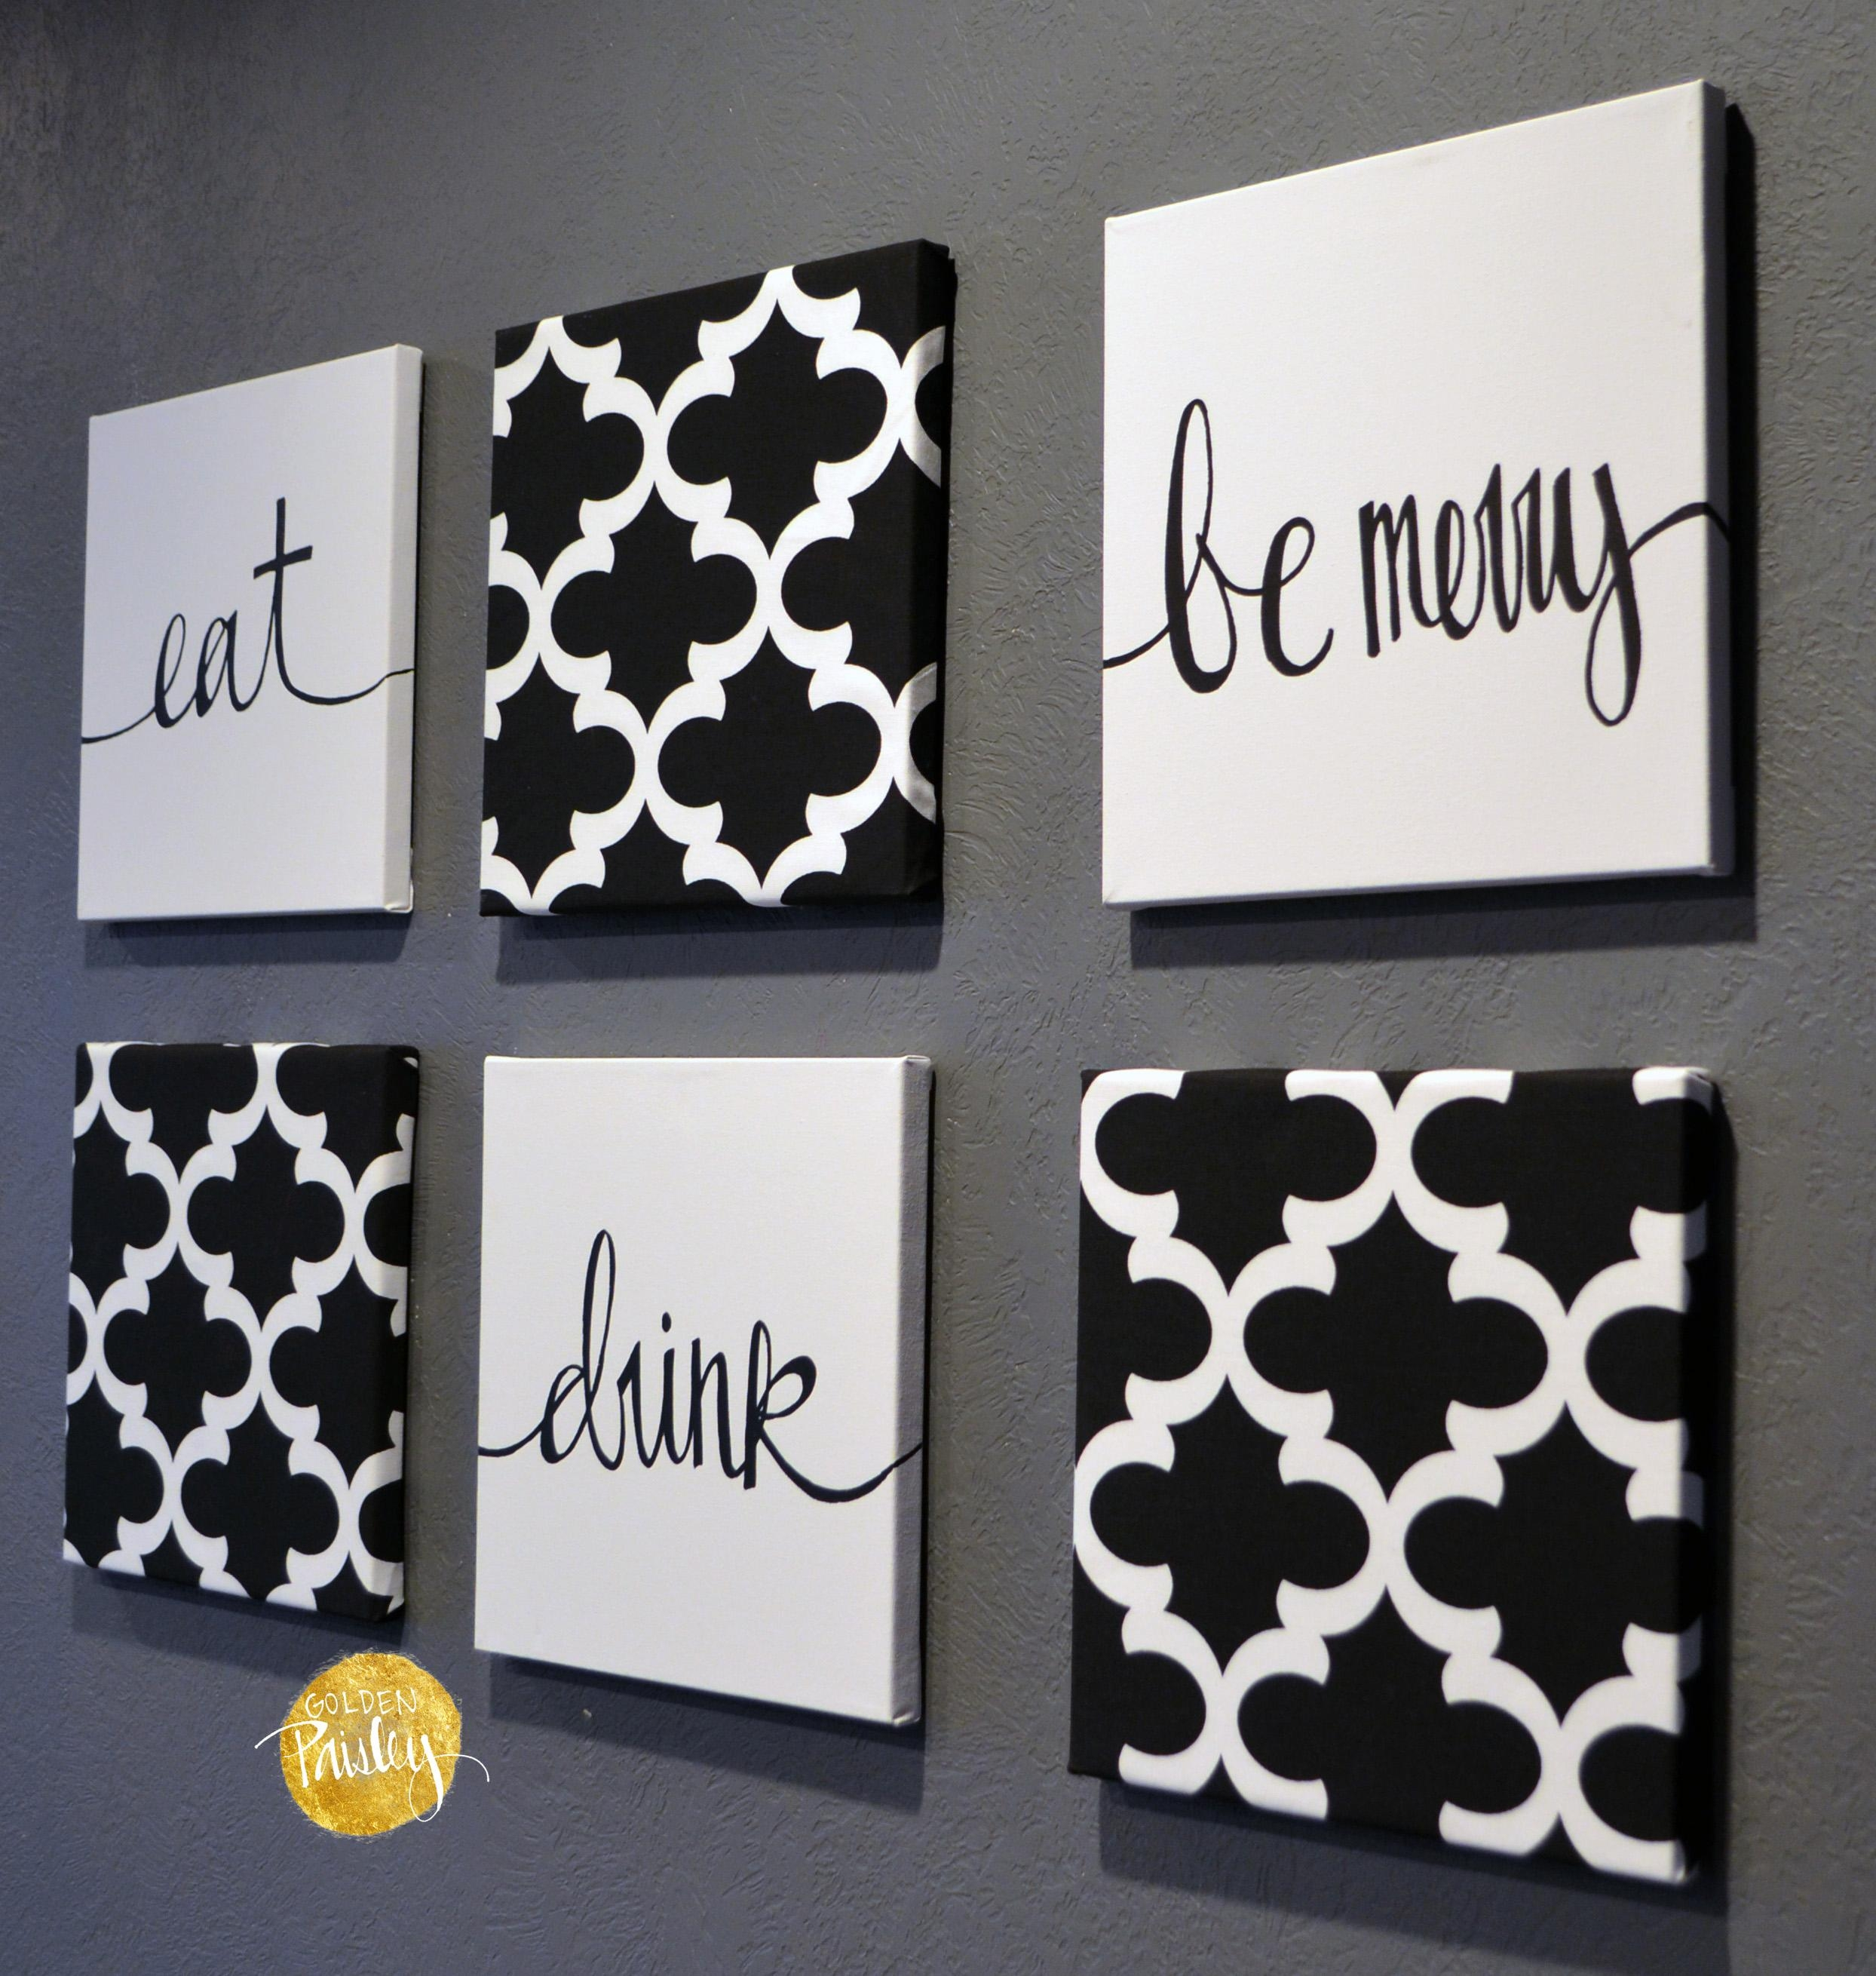 Black And White Moroccan 6 Pack Wall Art Pertaining To Black And White Wall Art Sets (Image 5 of 20)